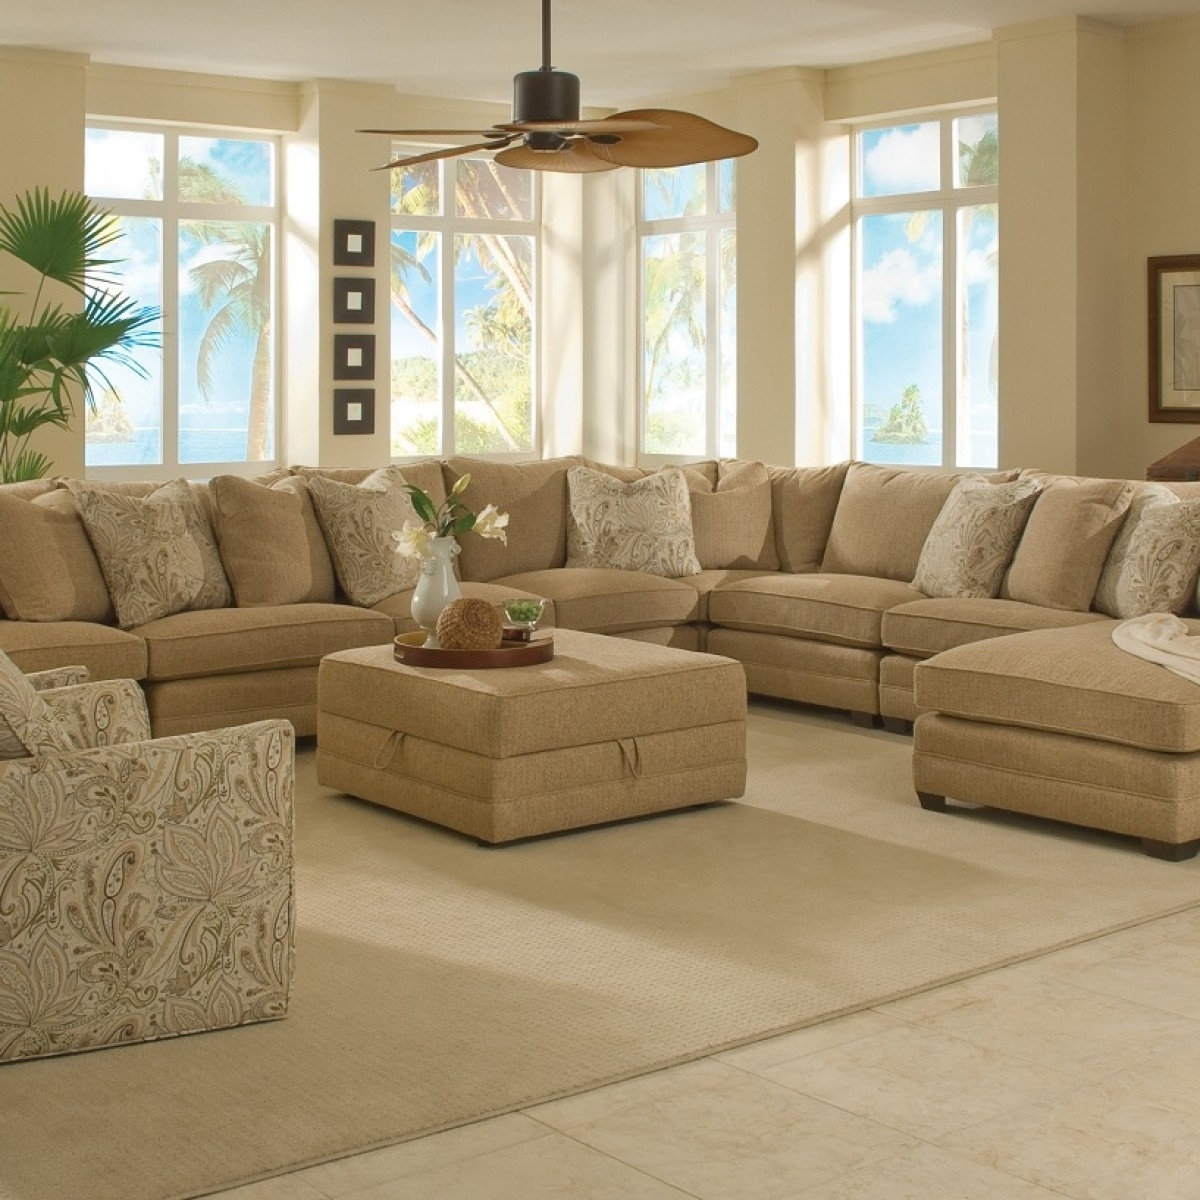 Factors To Consider Before Buying An Extra Large Sectional Sofa with Extra Large Sofas (Image 9 of 10)